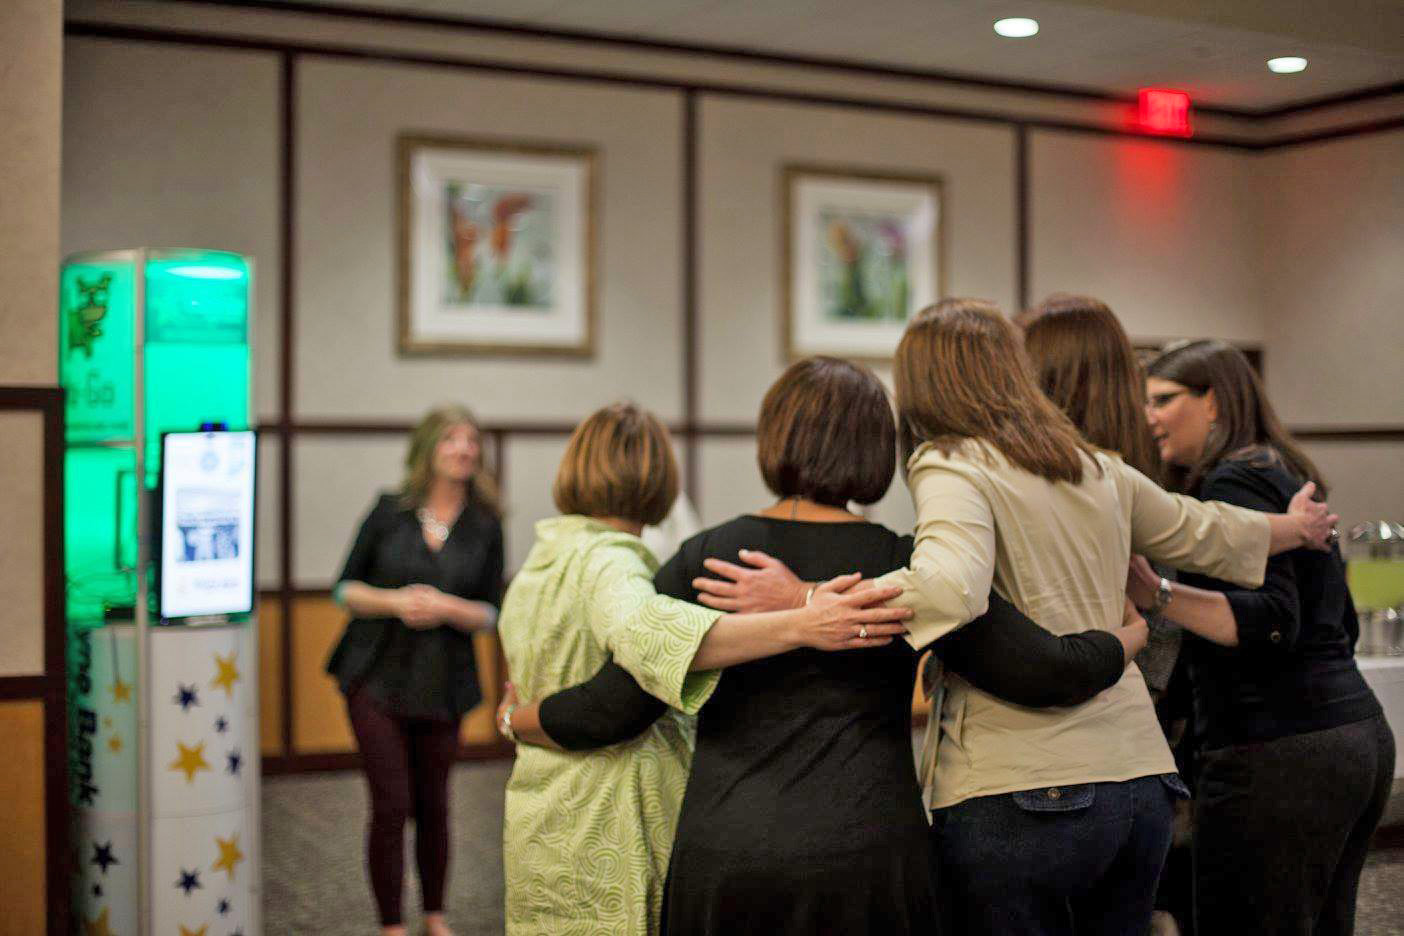 Group of women huddled together networking in Wayne County, Indiana